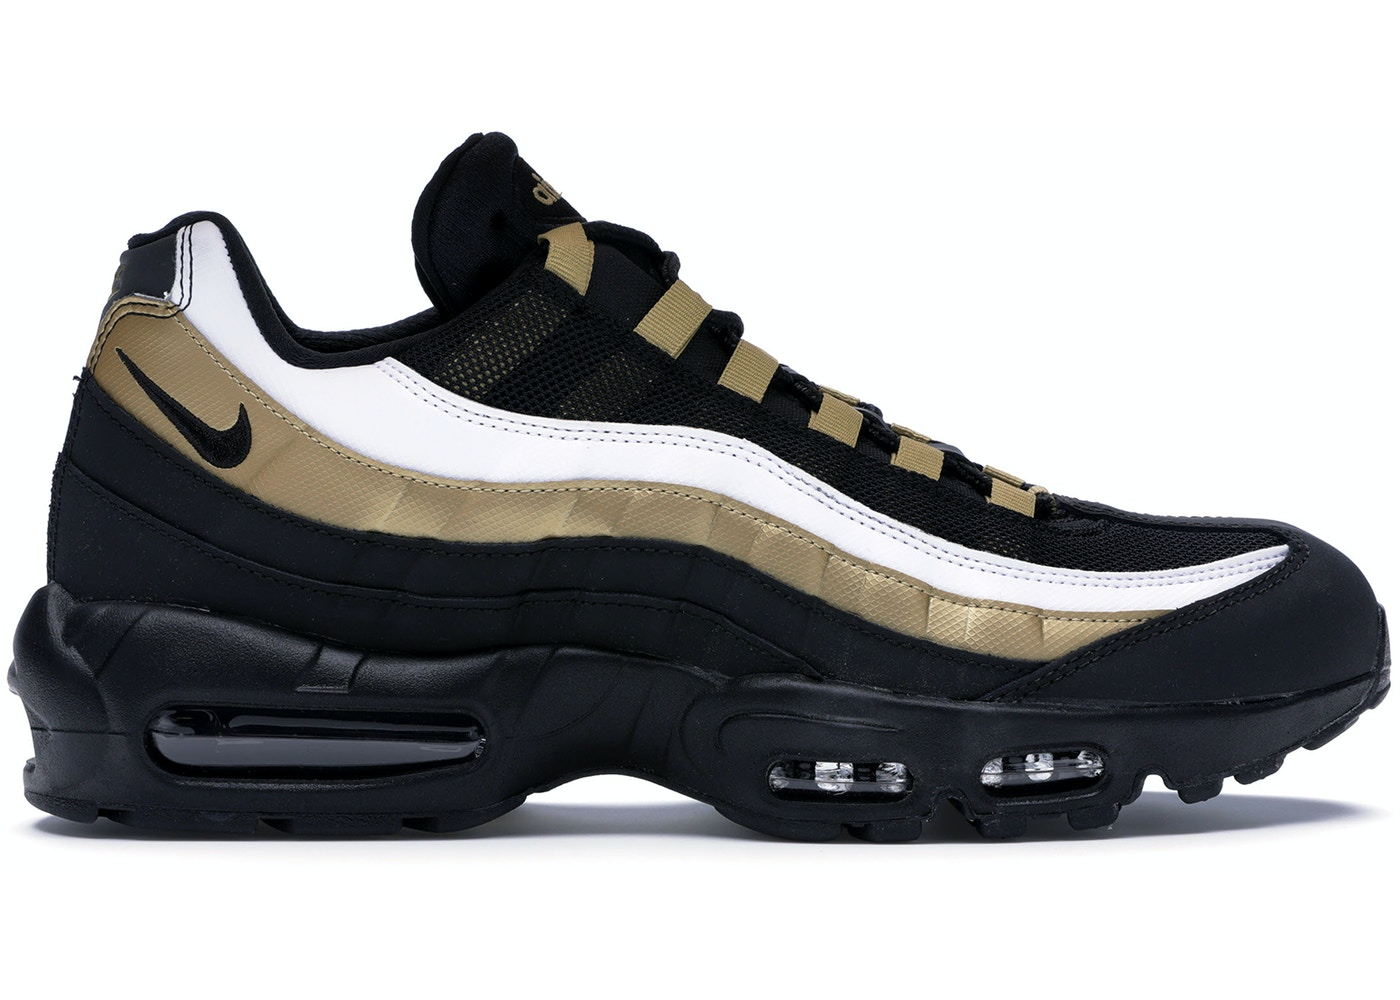 size 40 99359 10431 Air Max 95 OG Black Metallic Gold White - AT2865-002